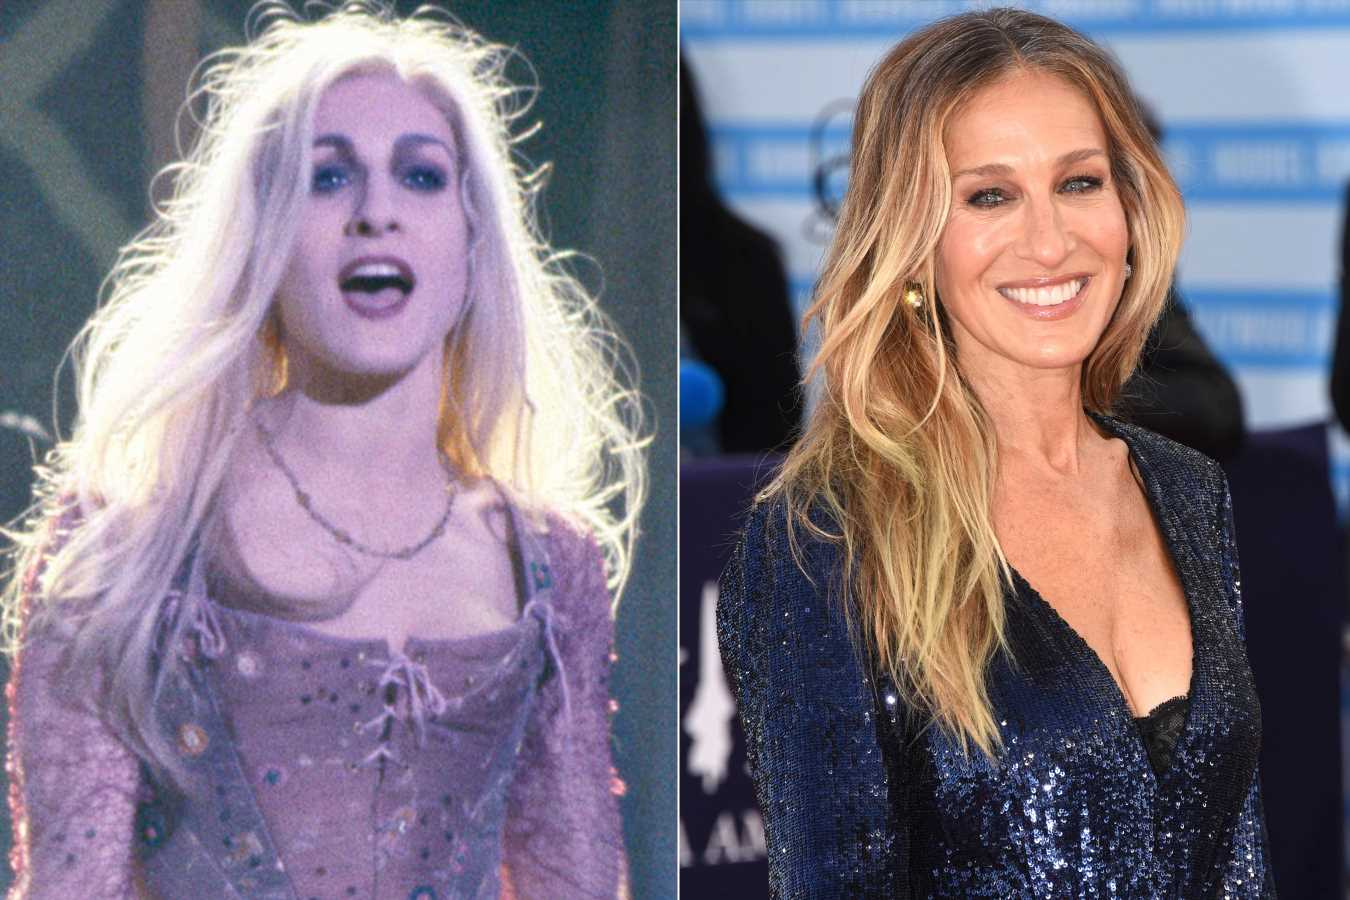 Hocus PocusTurns 26! See theSanderson Sistersand the Rest of the Cast Then and Now